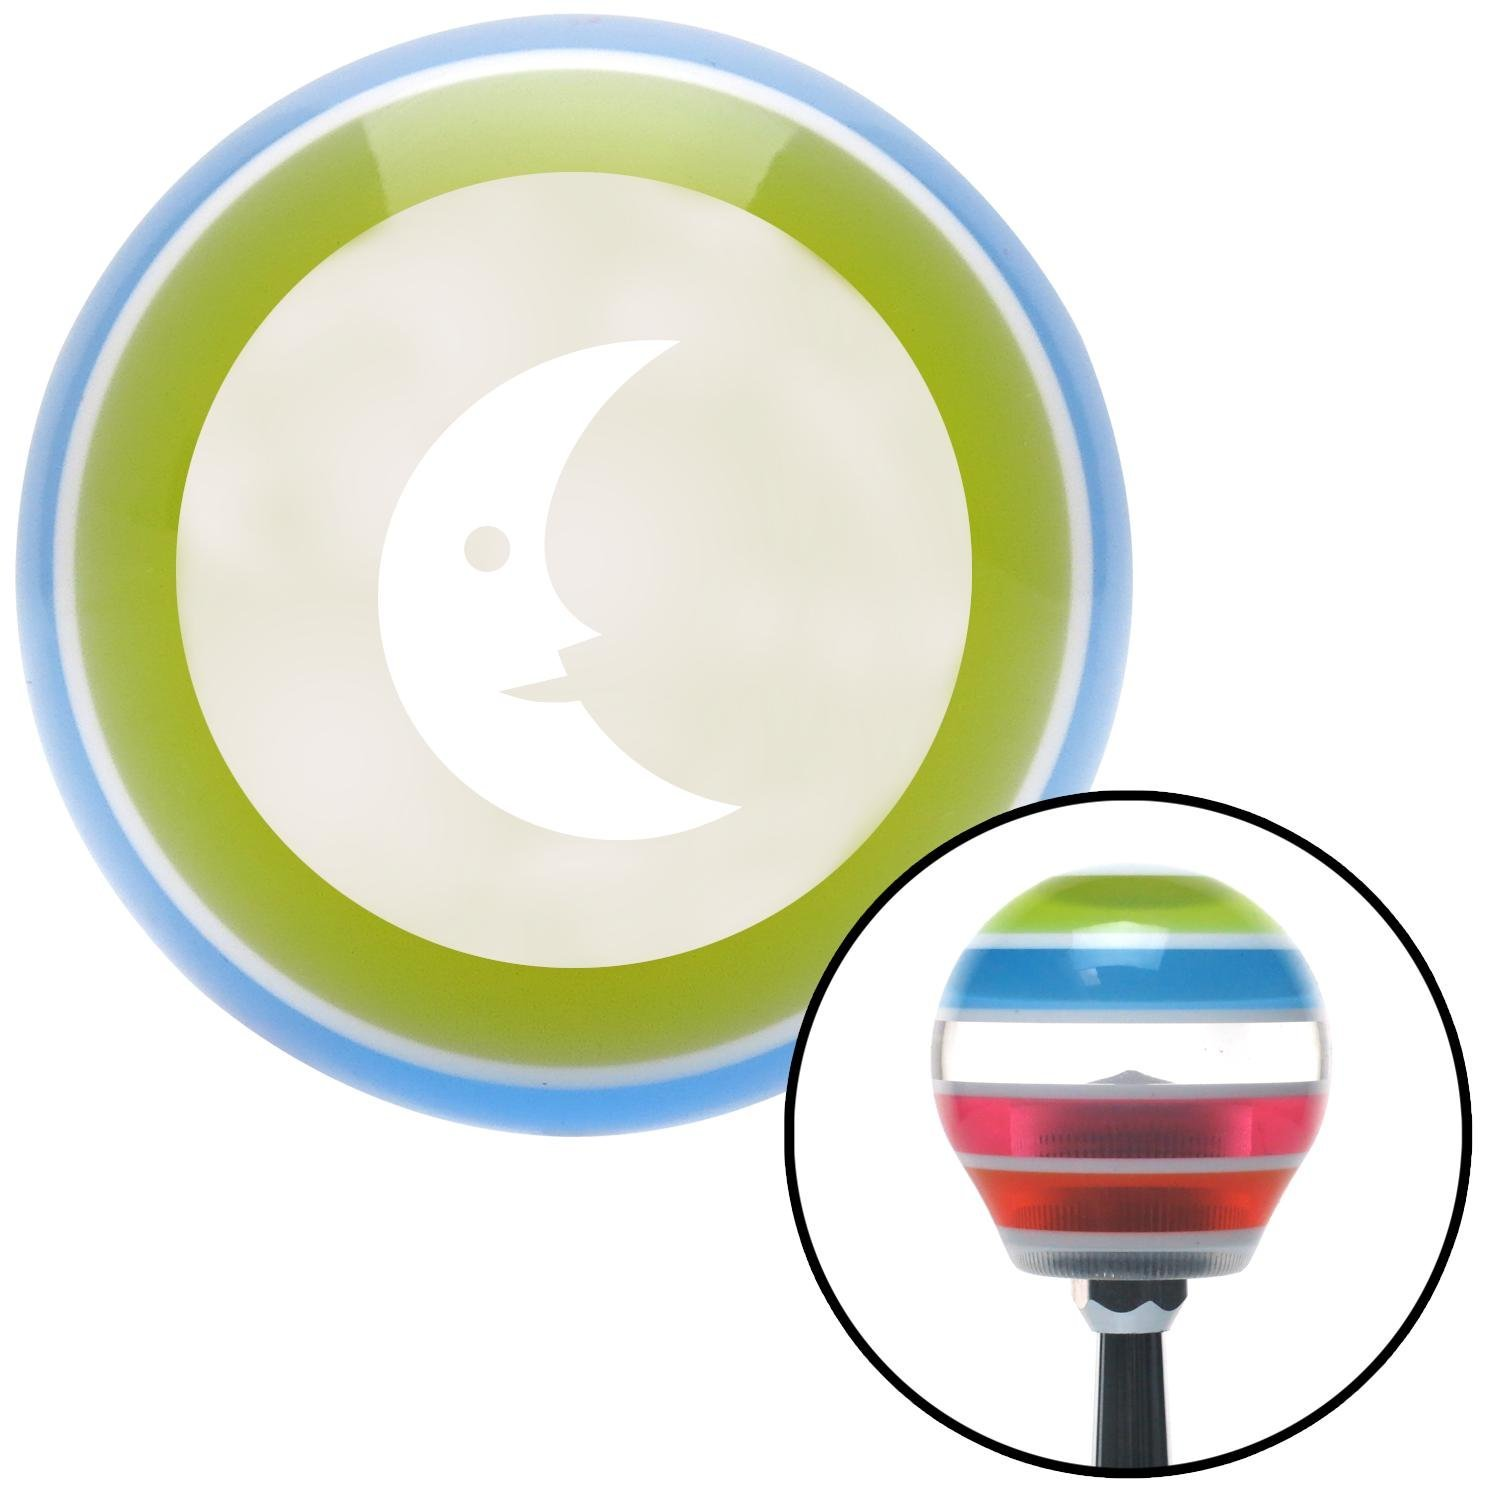 American Shifter 137015 Stripe Shift Knob with M16 x 1.5 Insert White Crescent Moon Smiling